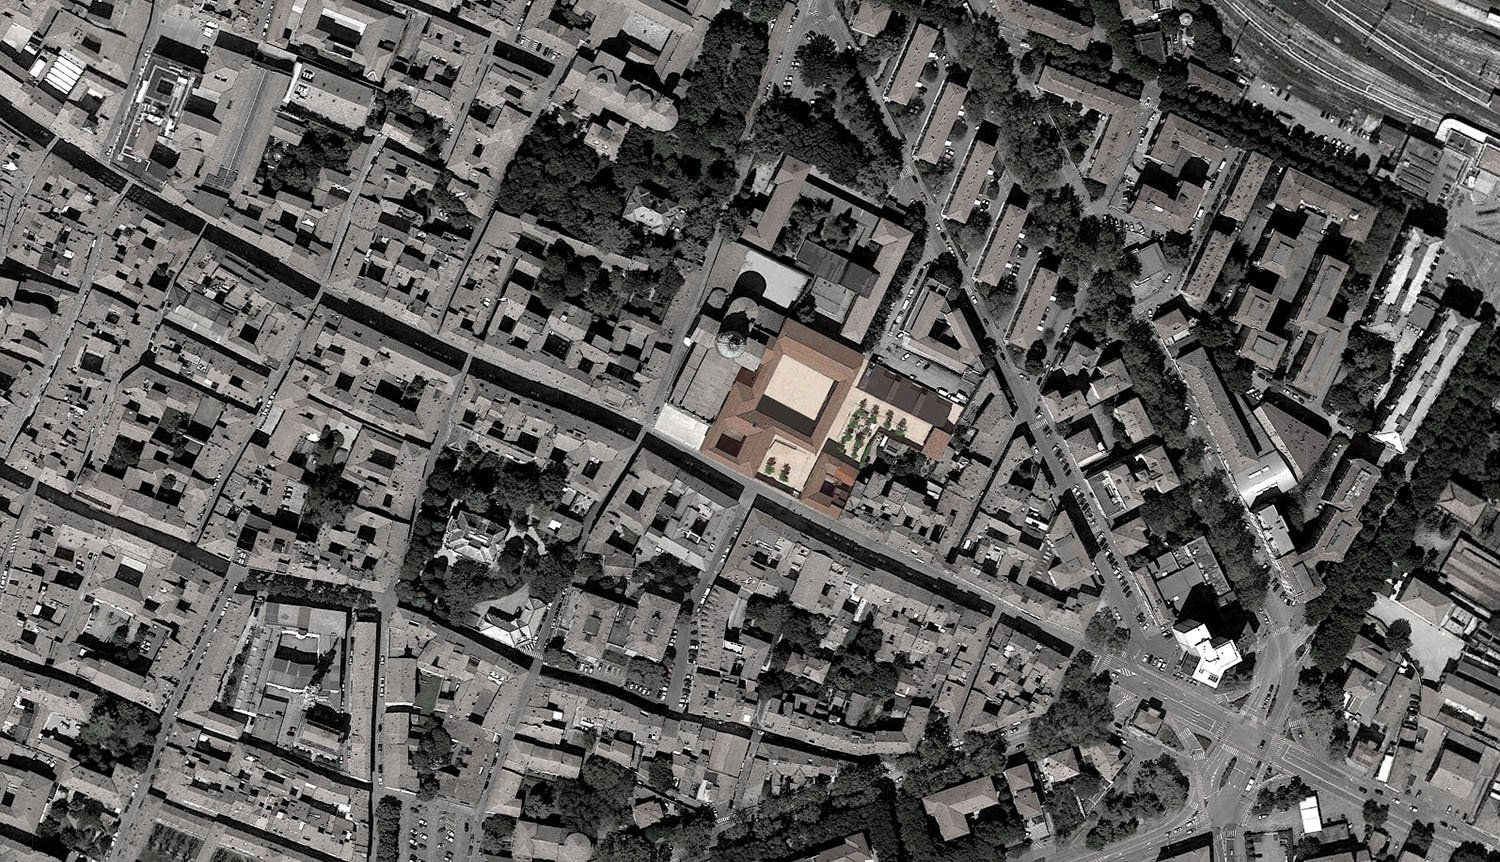 Orthophoto with Cloisters of San Pietro ZAA}